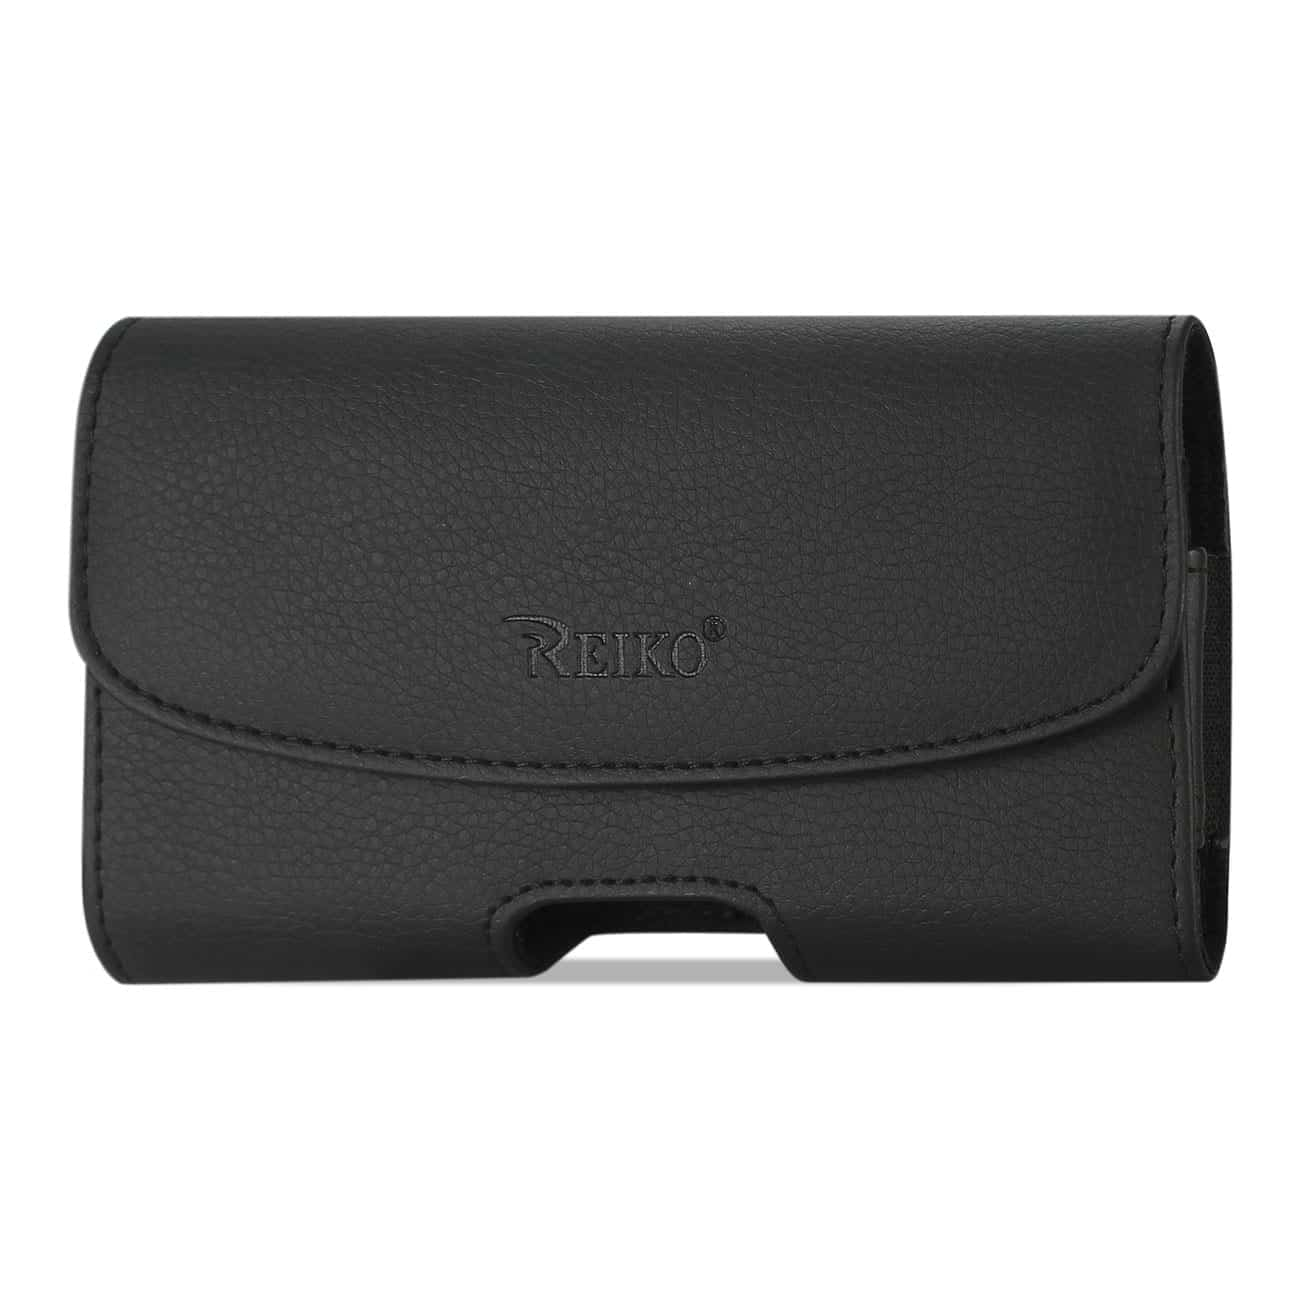 Leather Horizontal Phone Pouch With Embossed Logo In Black (5.2X3.0X0.8 Inches)